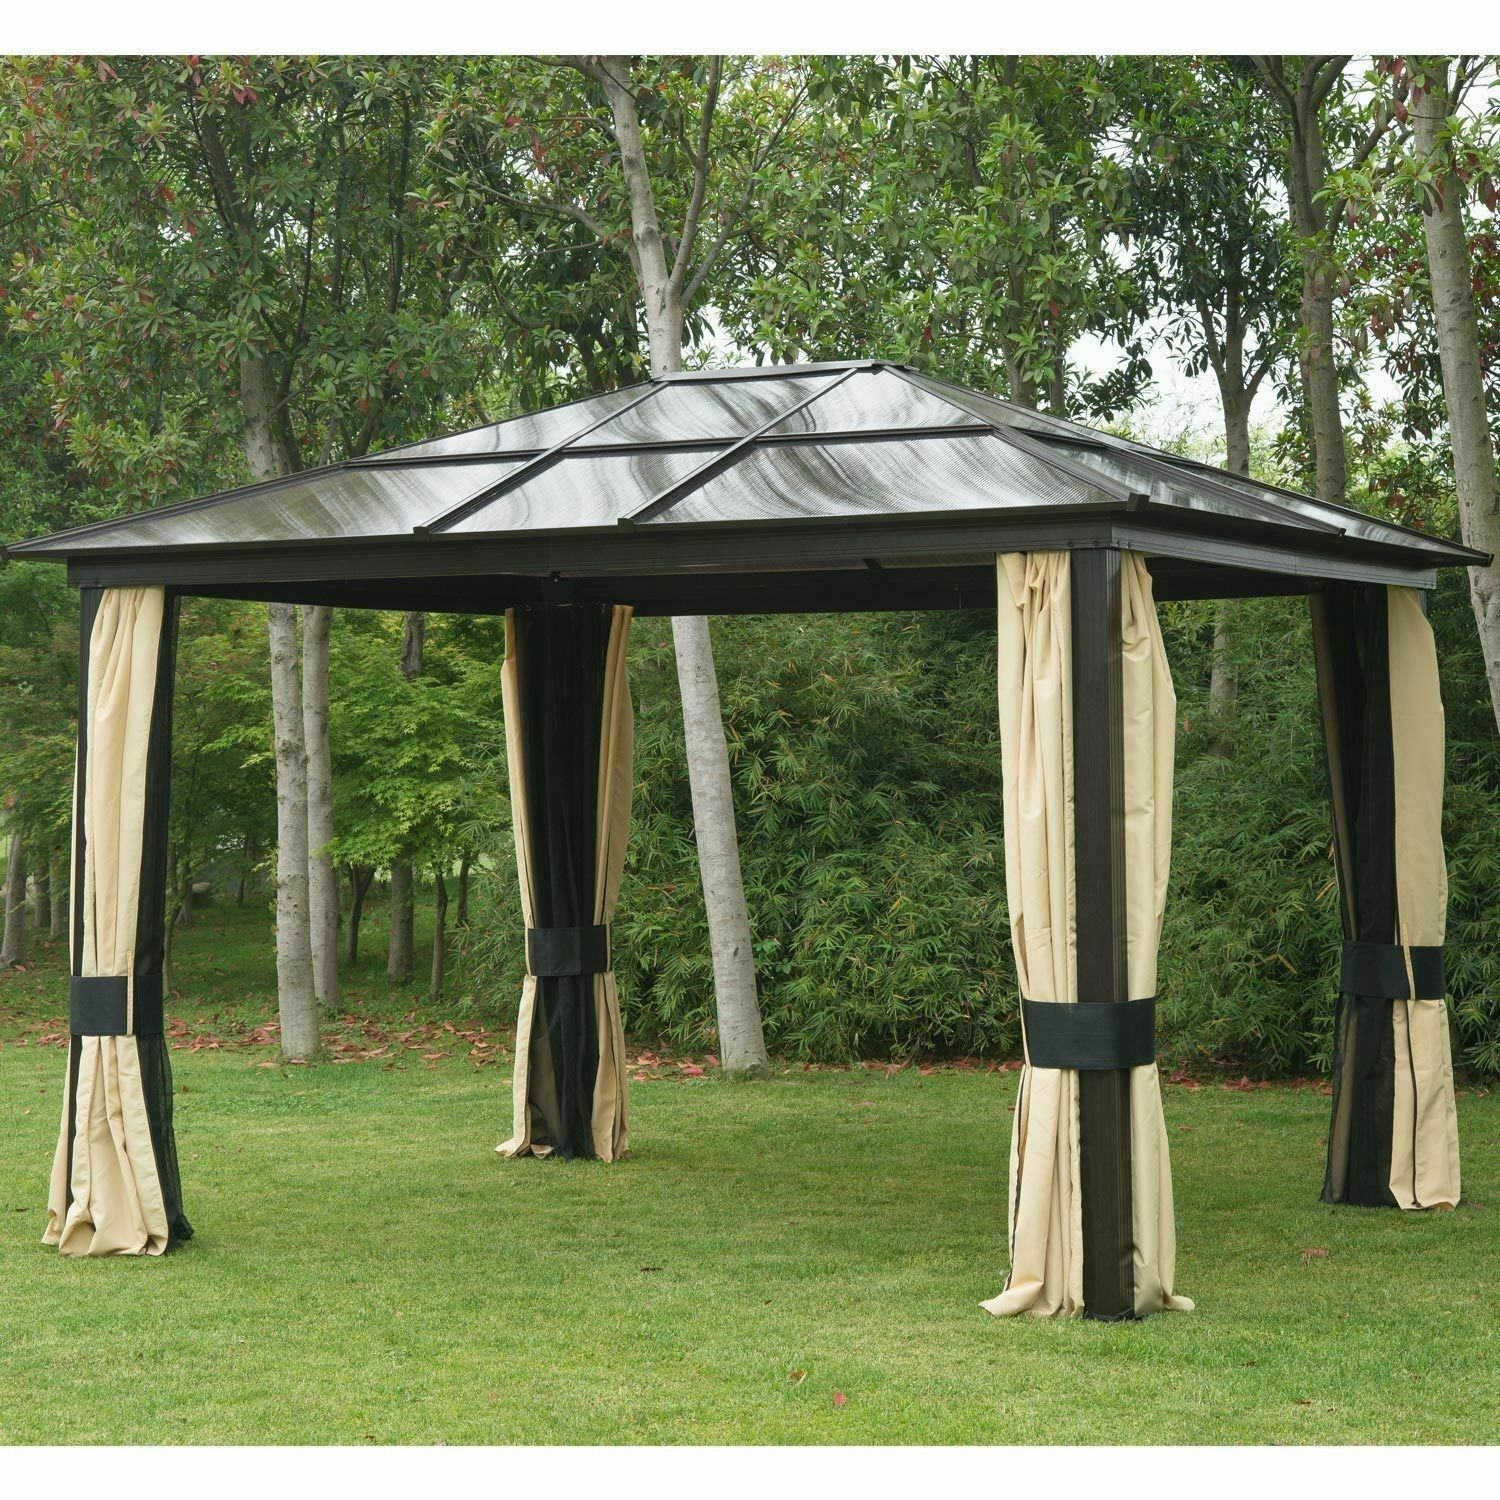 12 X10 Gazebo Canopy Net Hardtop Roof Steel Outdoor Patio Tent W Mesh Walls In 2020 Patio Tents Patio Canopy Gazebo